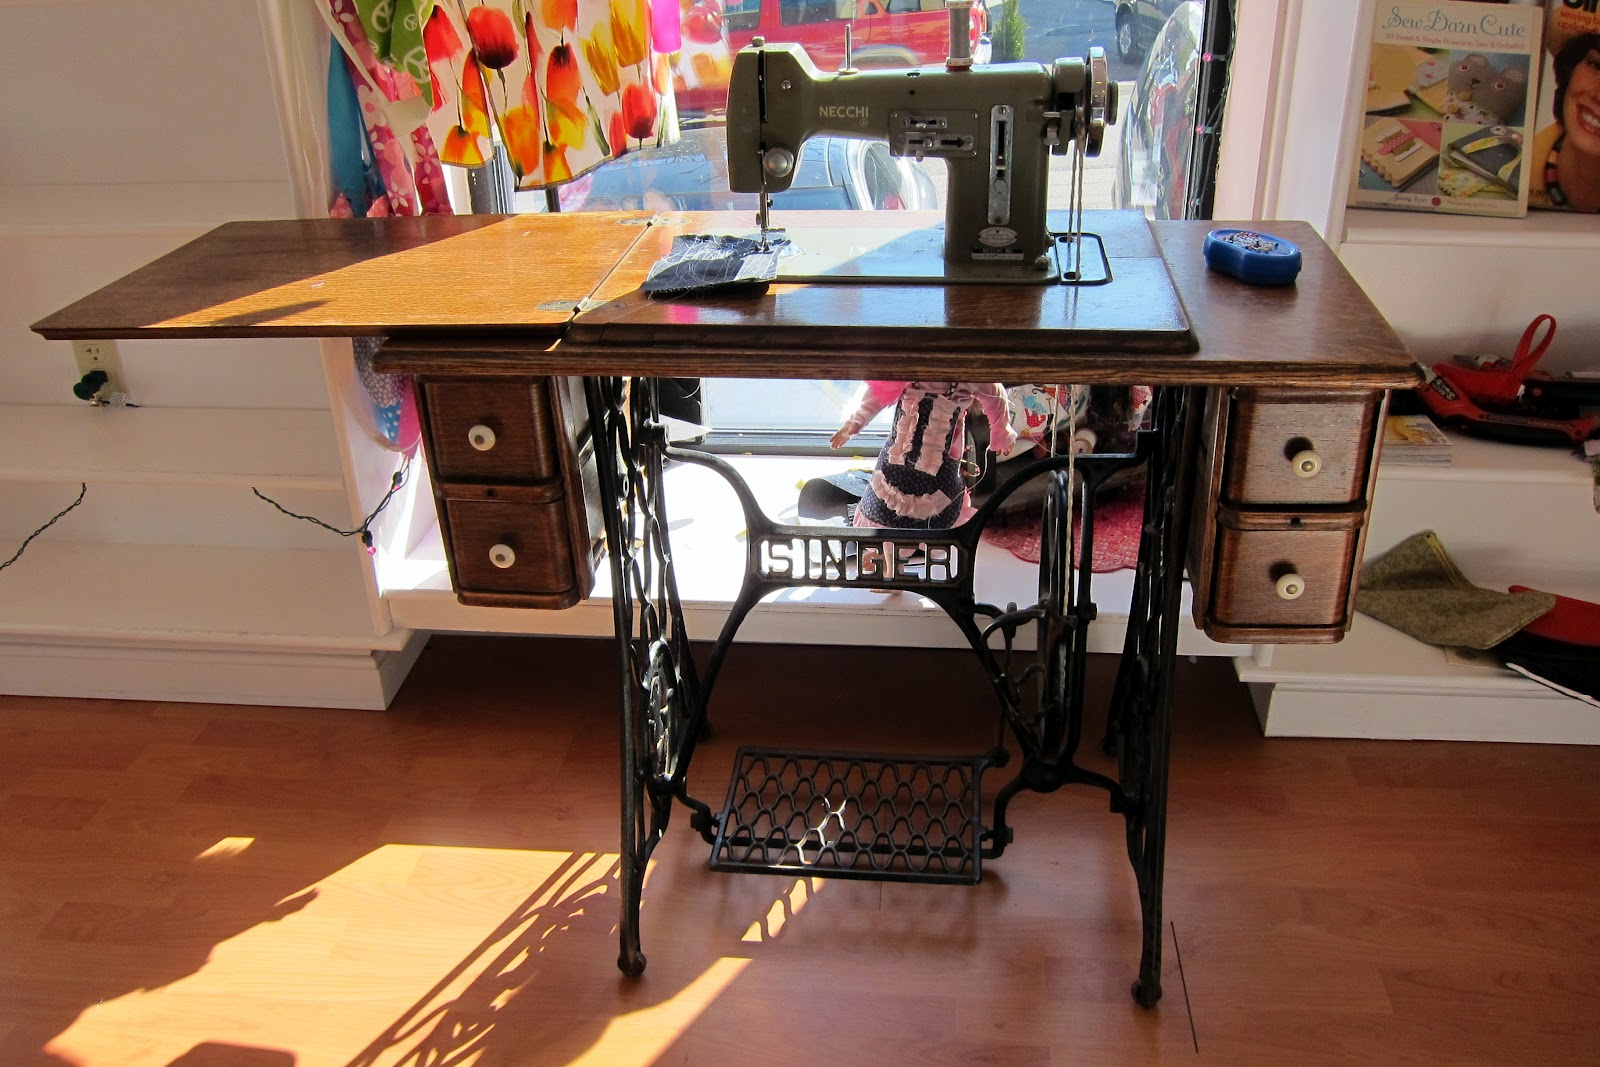 Briansews 2012 Necchi Supernova Sewing Machine Threading Diagram Vintage Im In The Mood Its My Go To For I Was A Little Disappointed Find That Treadle Is Very Slow At Least On Table Like This